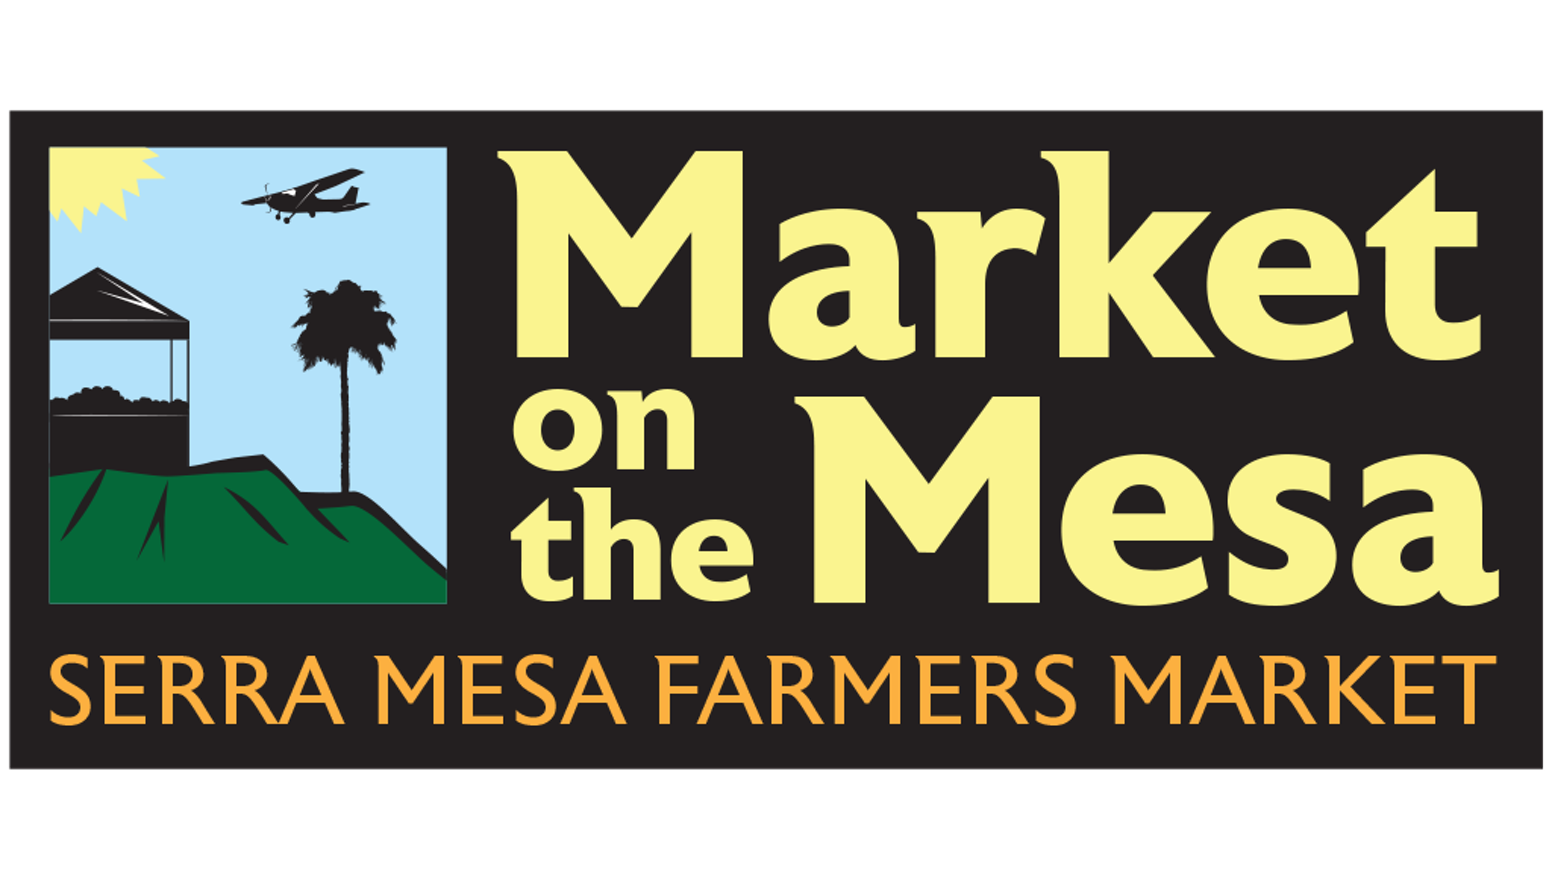 Vendor application: http://www.sdmarketmanager.com/wb/pages/becoming-a-vendor.phpWe're on FB @serramesafarmersmarket